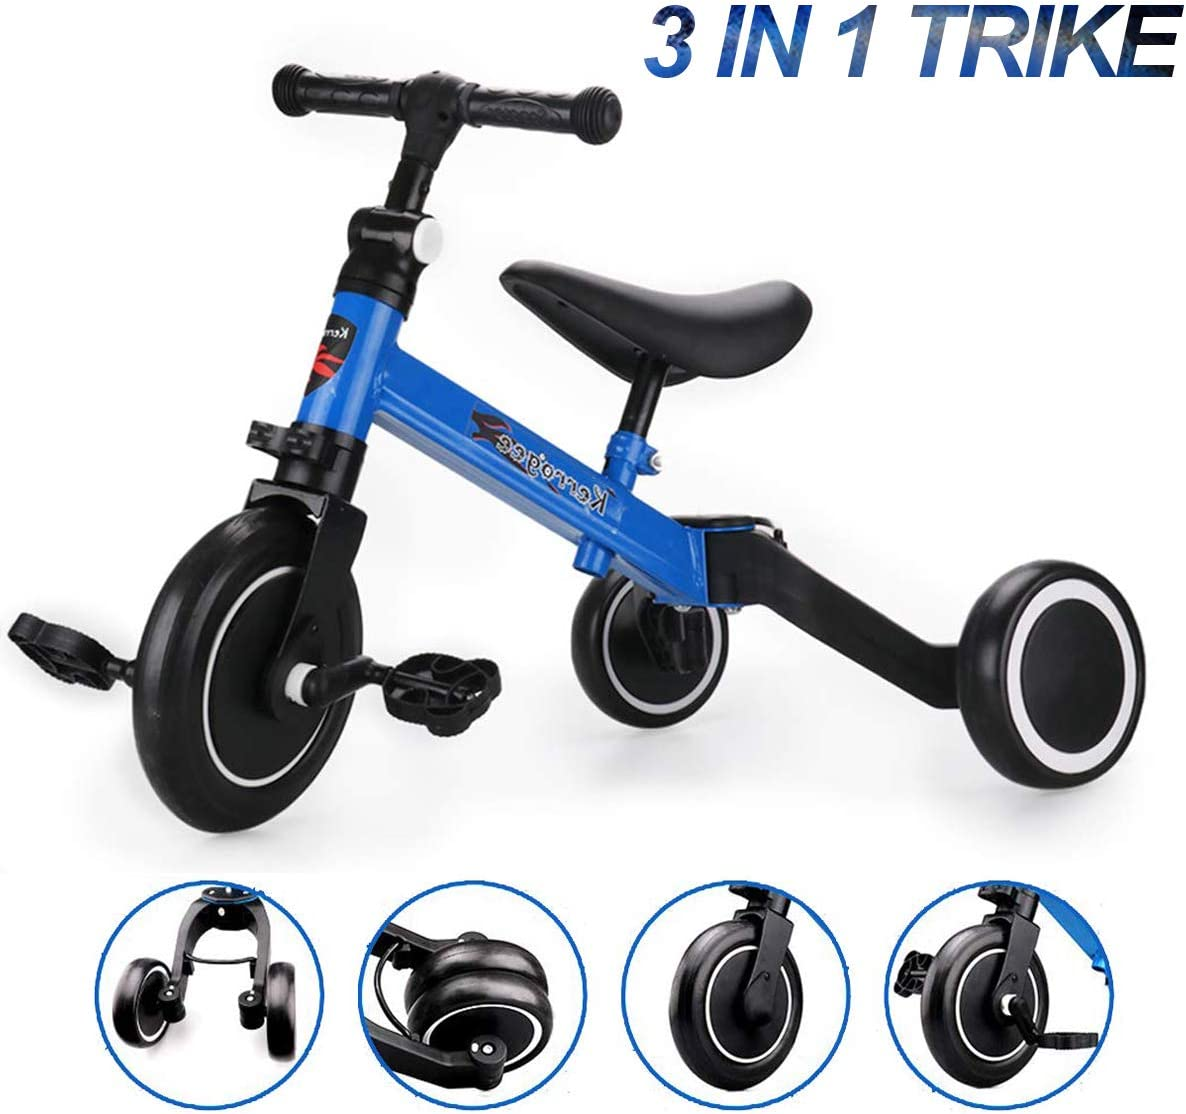 Lovinouse 2020 Upgraded 3 in 1 Kids Tricycle, for 1-6 Years Old Kids, 3 Wheel Convert 2 Wheel Toddler Trikes Bike with Adjustable Seat and Removable Pedals for Boys Girls